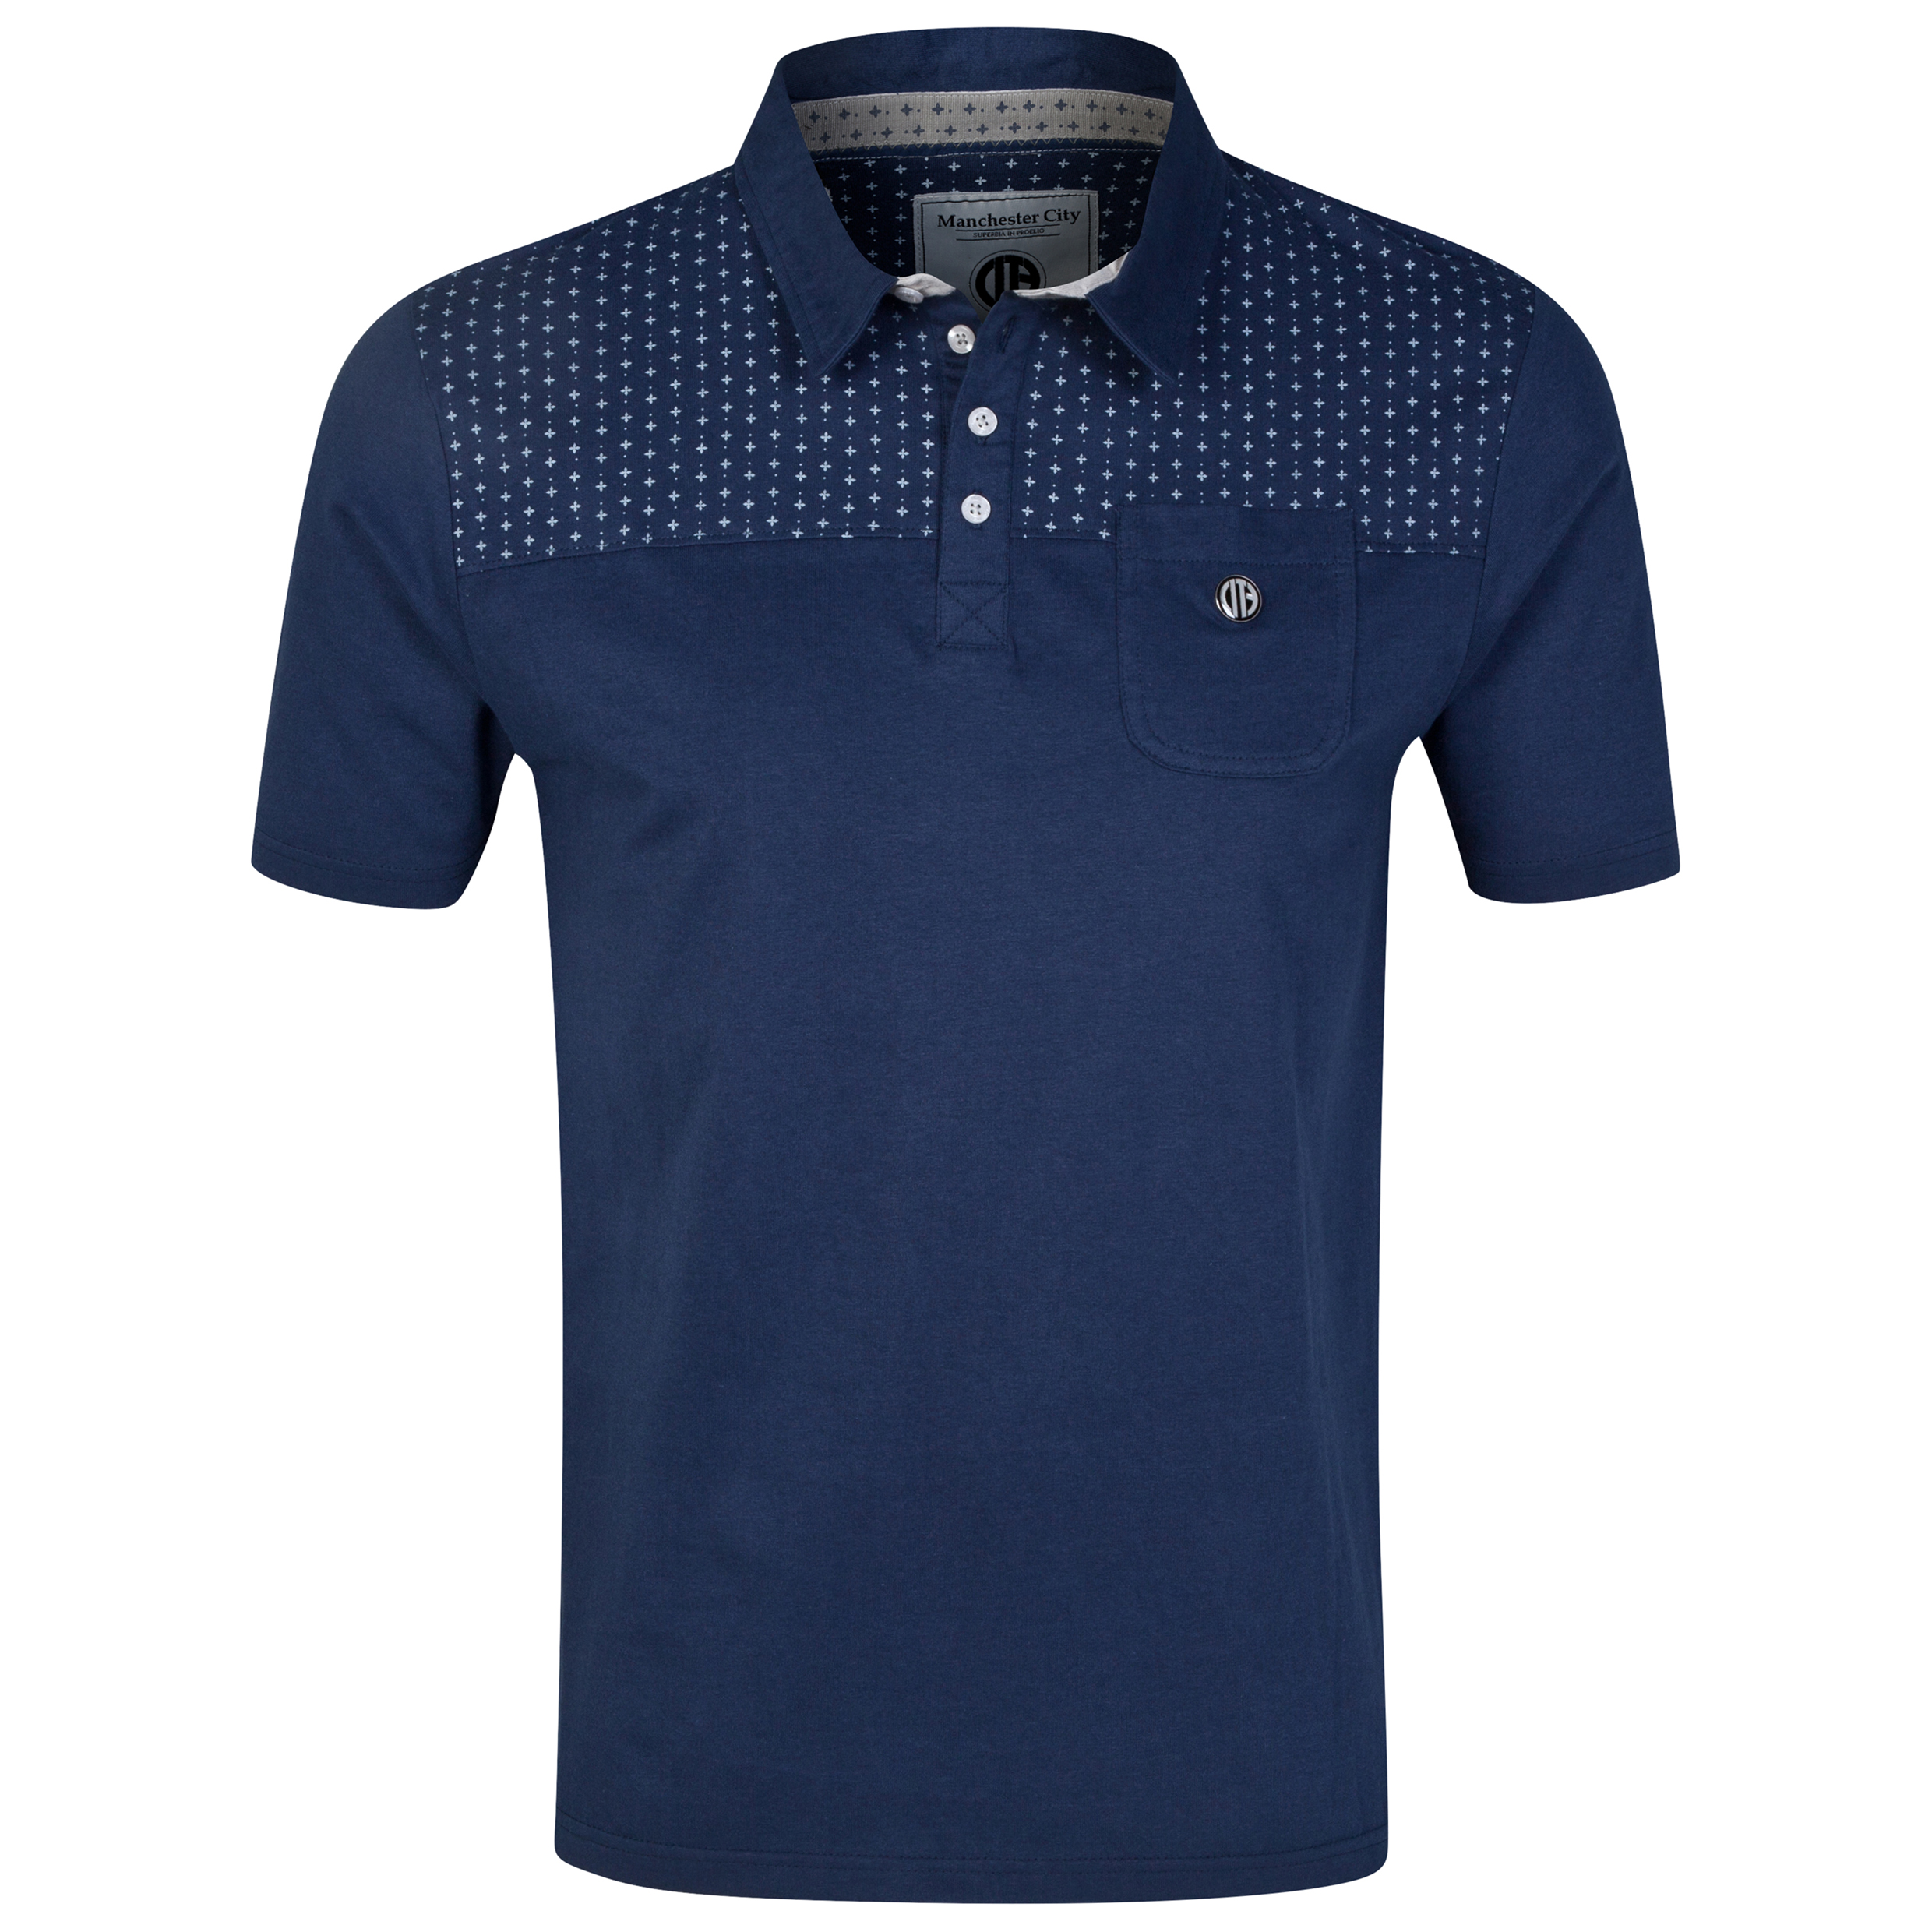 Manchester City Polo Shirt - Navy - Mens